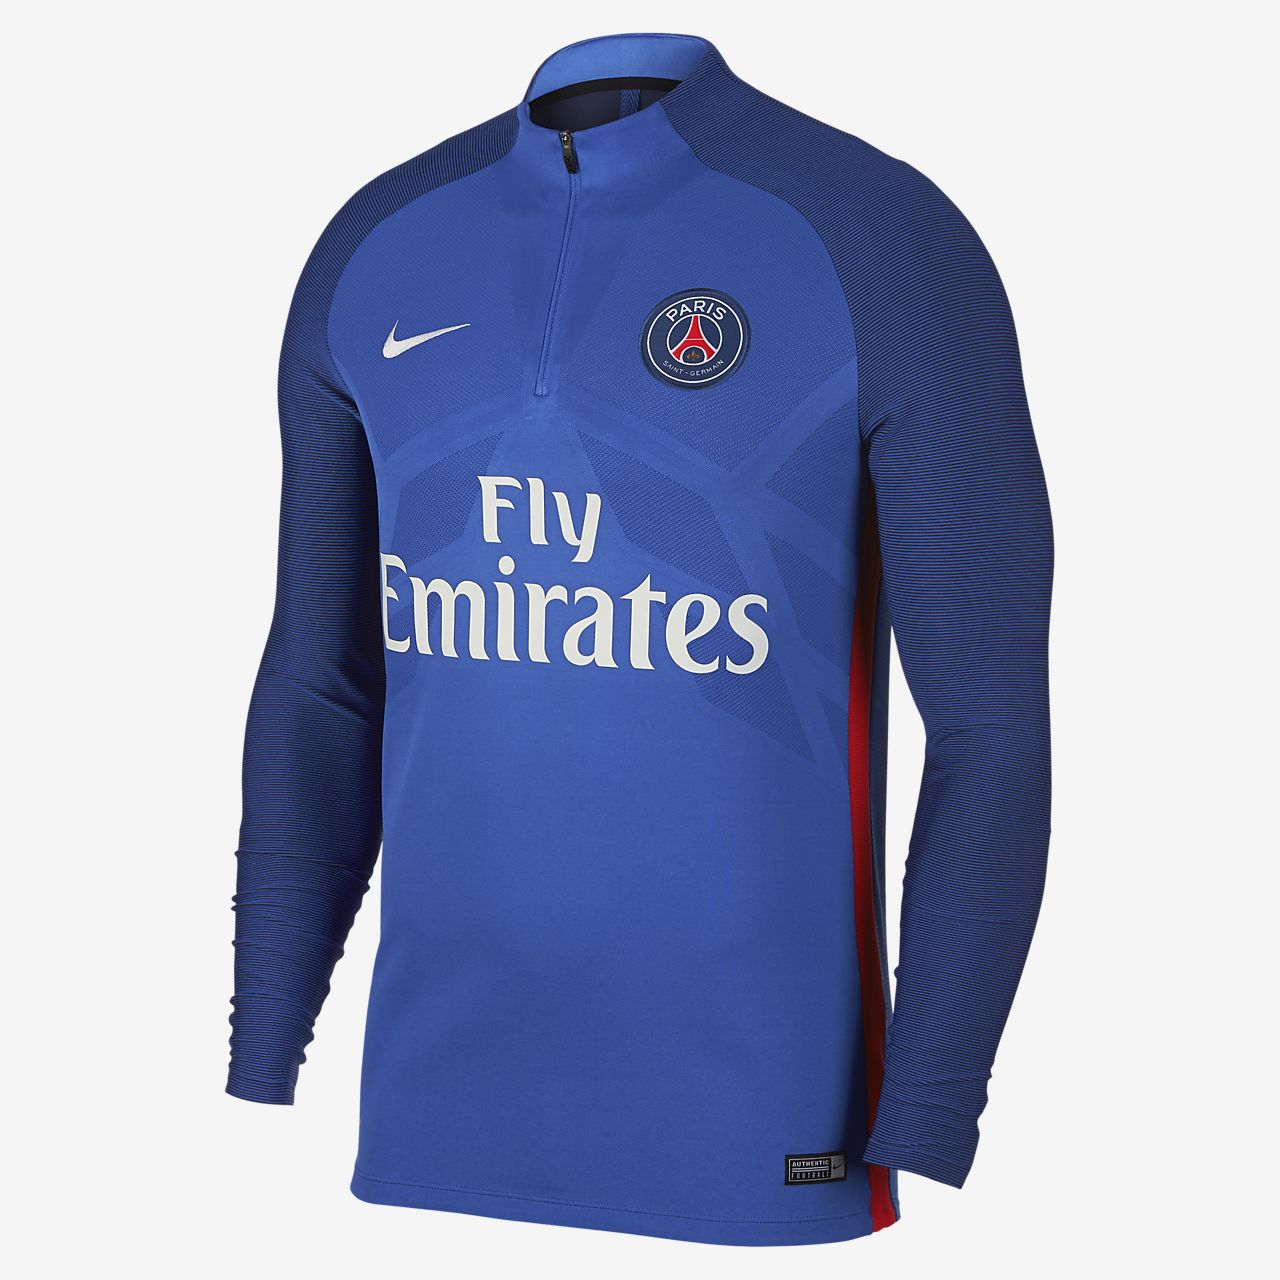 Camiseta Paris Saint Germain modelos